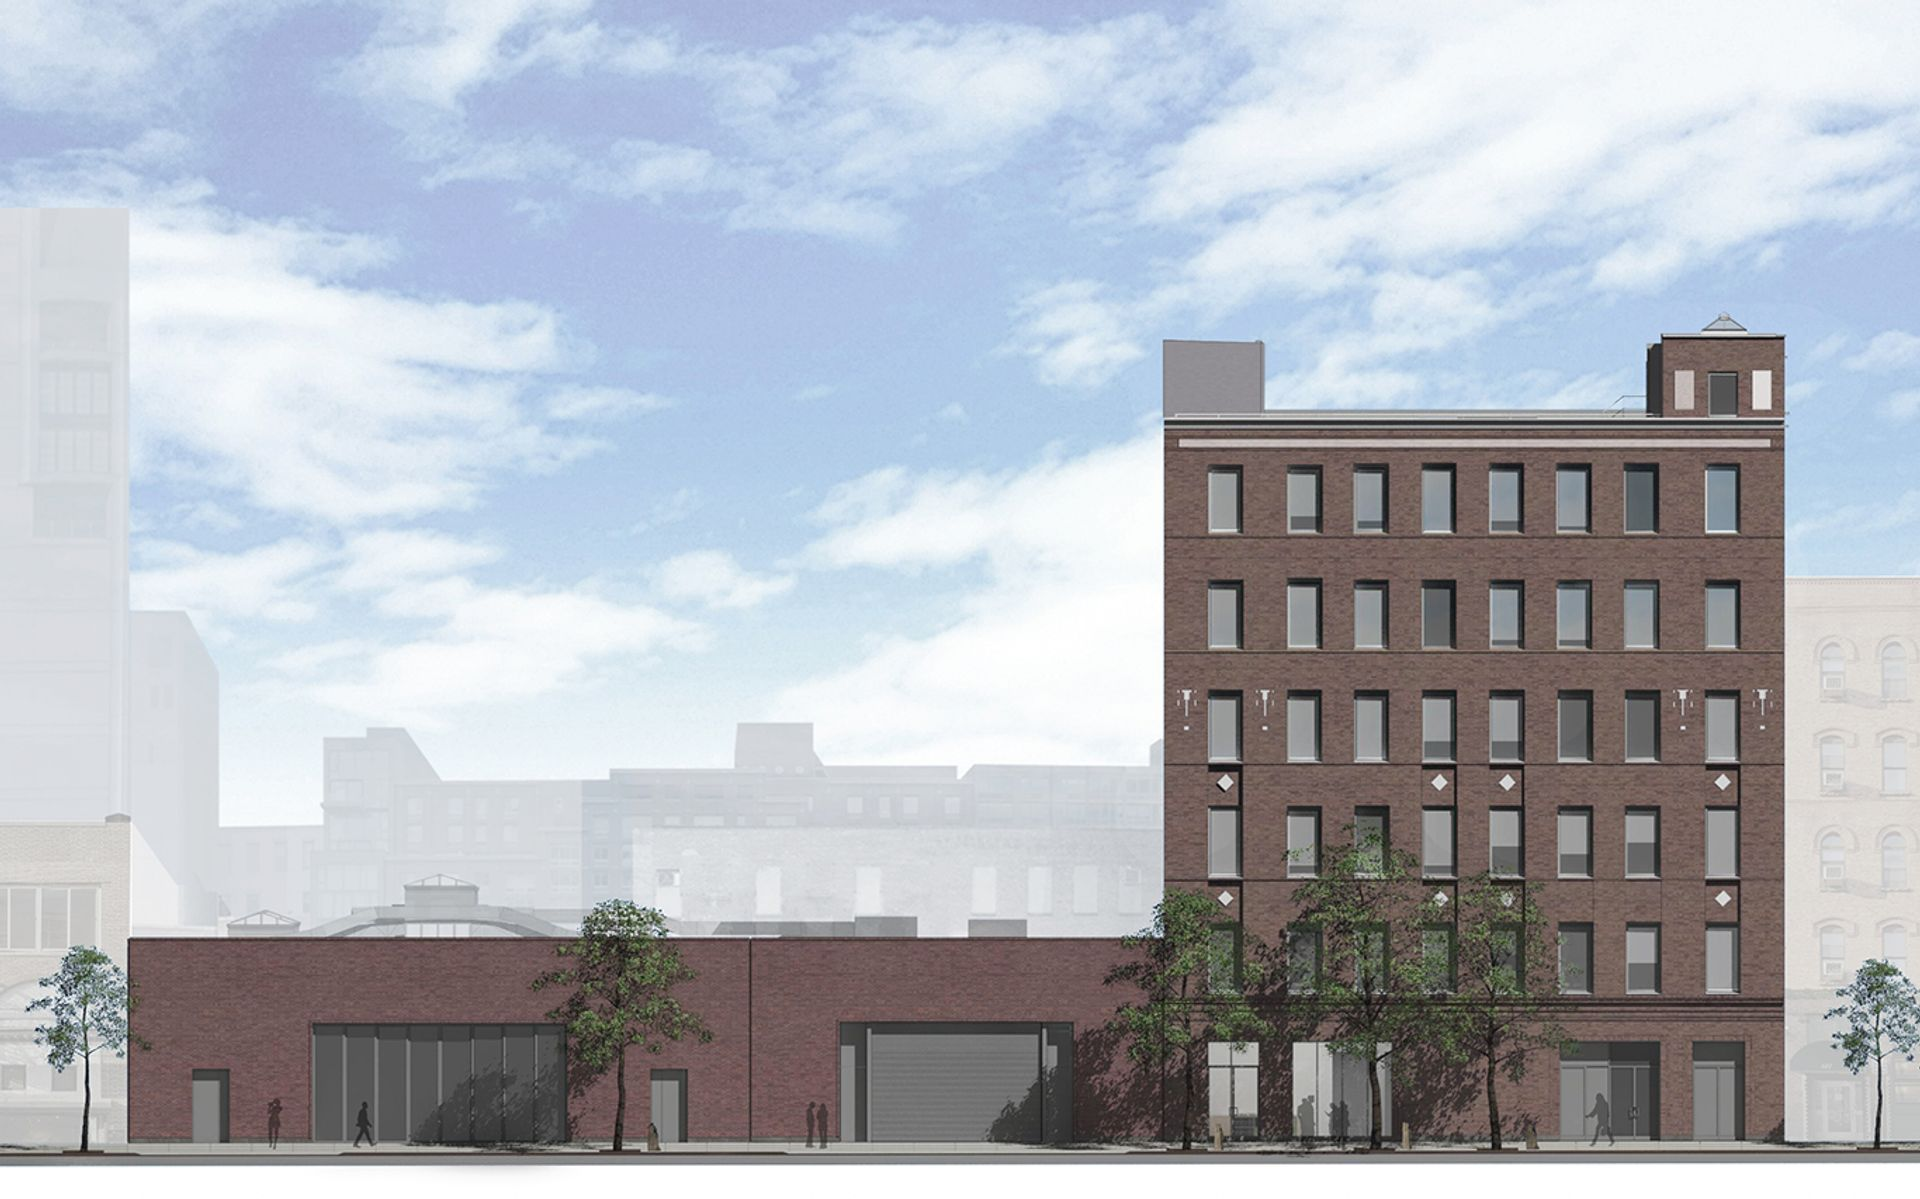 A rendering of Dia Chelsea on West 22nd Street between Tenth and 11th Avenues Courtesy of Dia Art Foundation